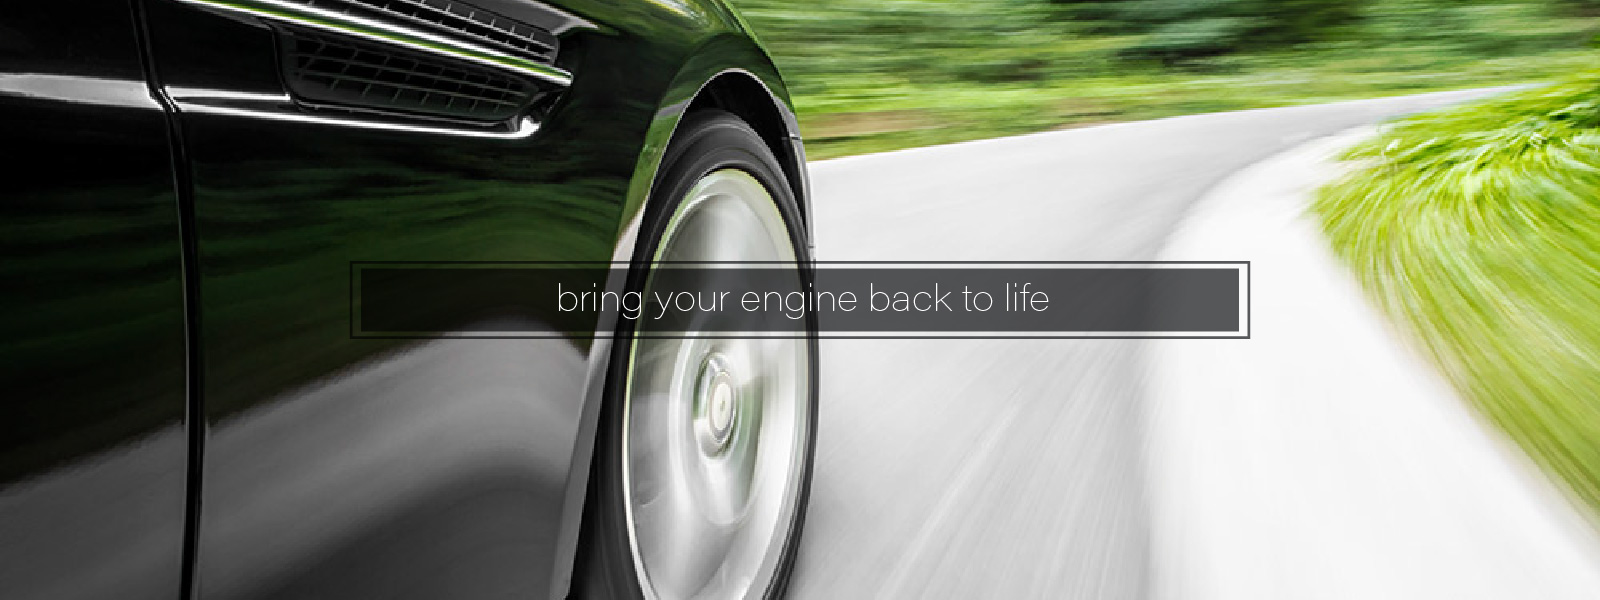 Bring Your Engine Back To Life